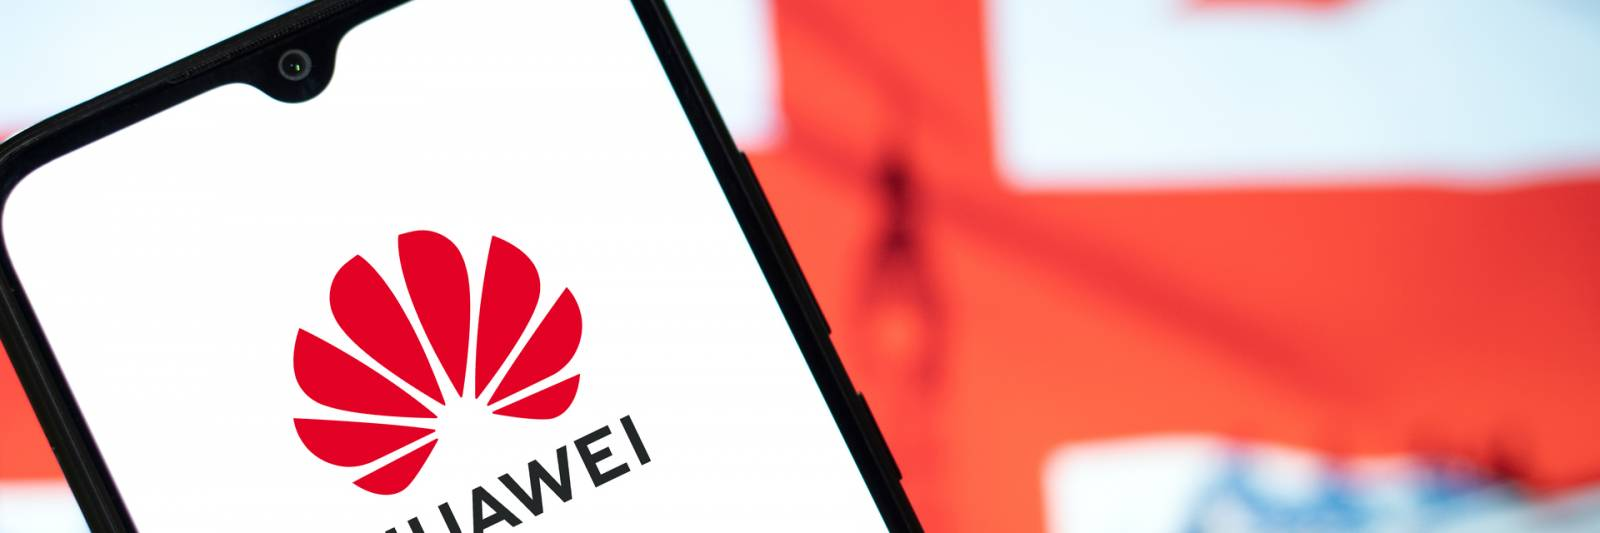 Uk Telcos Could Be Fined £100,000 A Day For Huawei